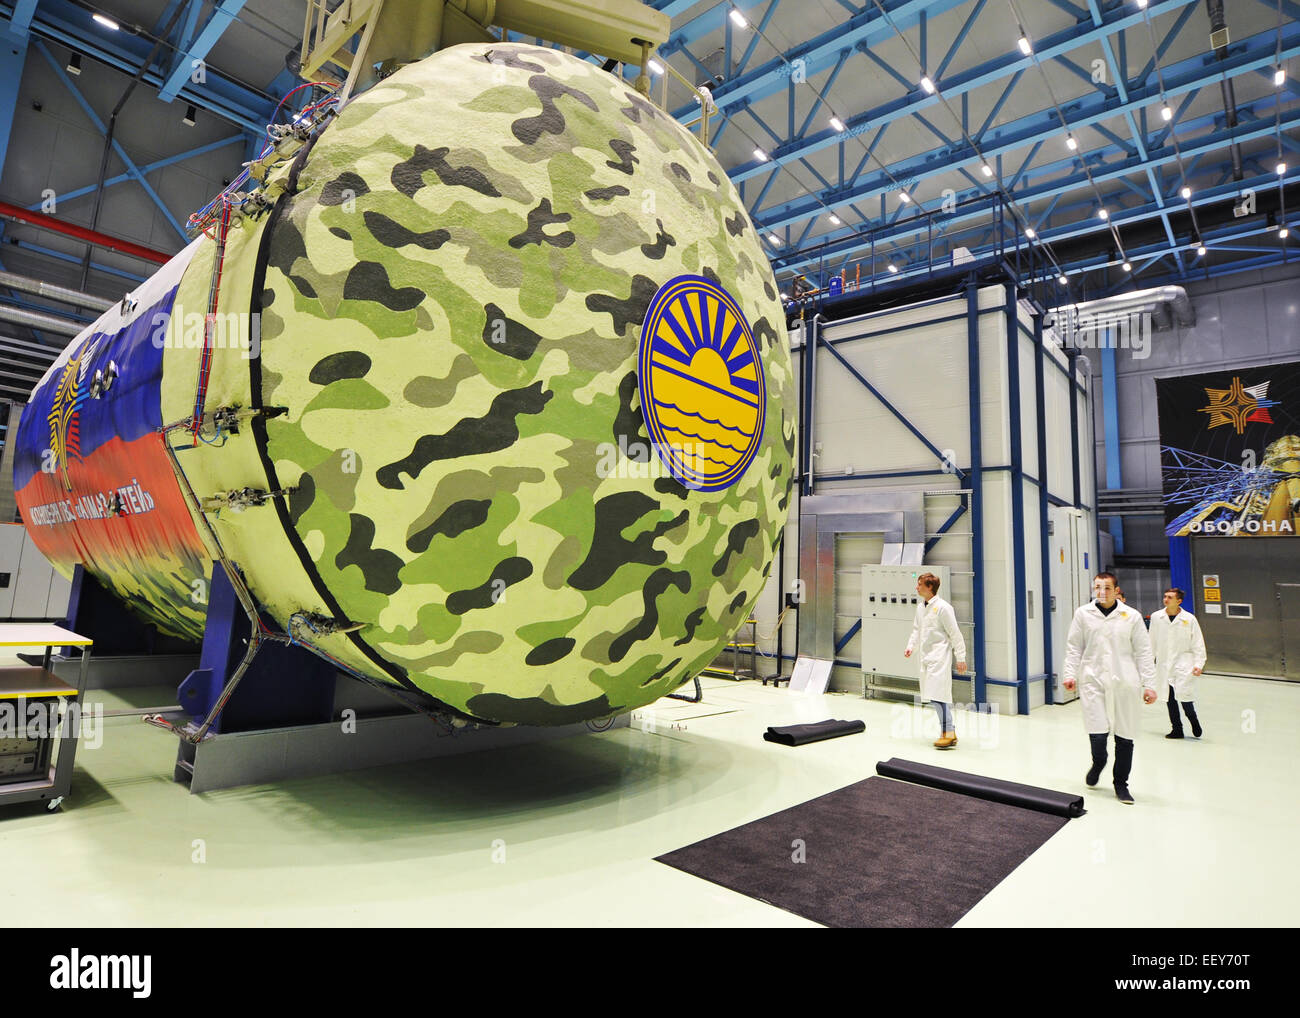 St Petersburg, Russia. 23rd Jan, 2015. The opening ceremony of Almaz-Antey testing facility in St Petersburg. The - Stock Image